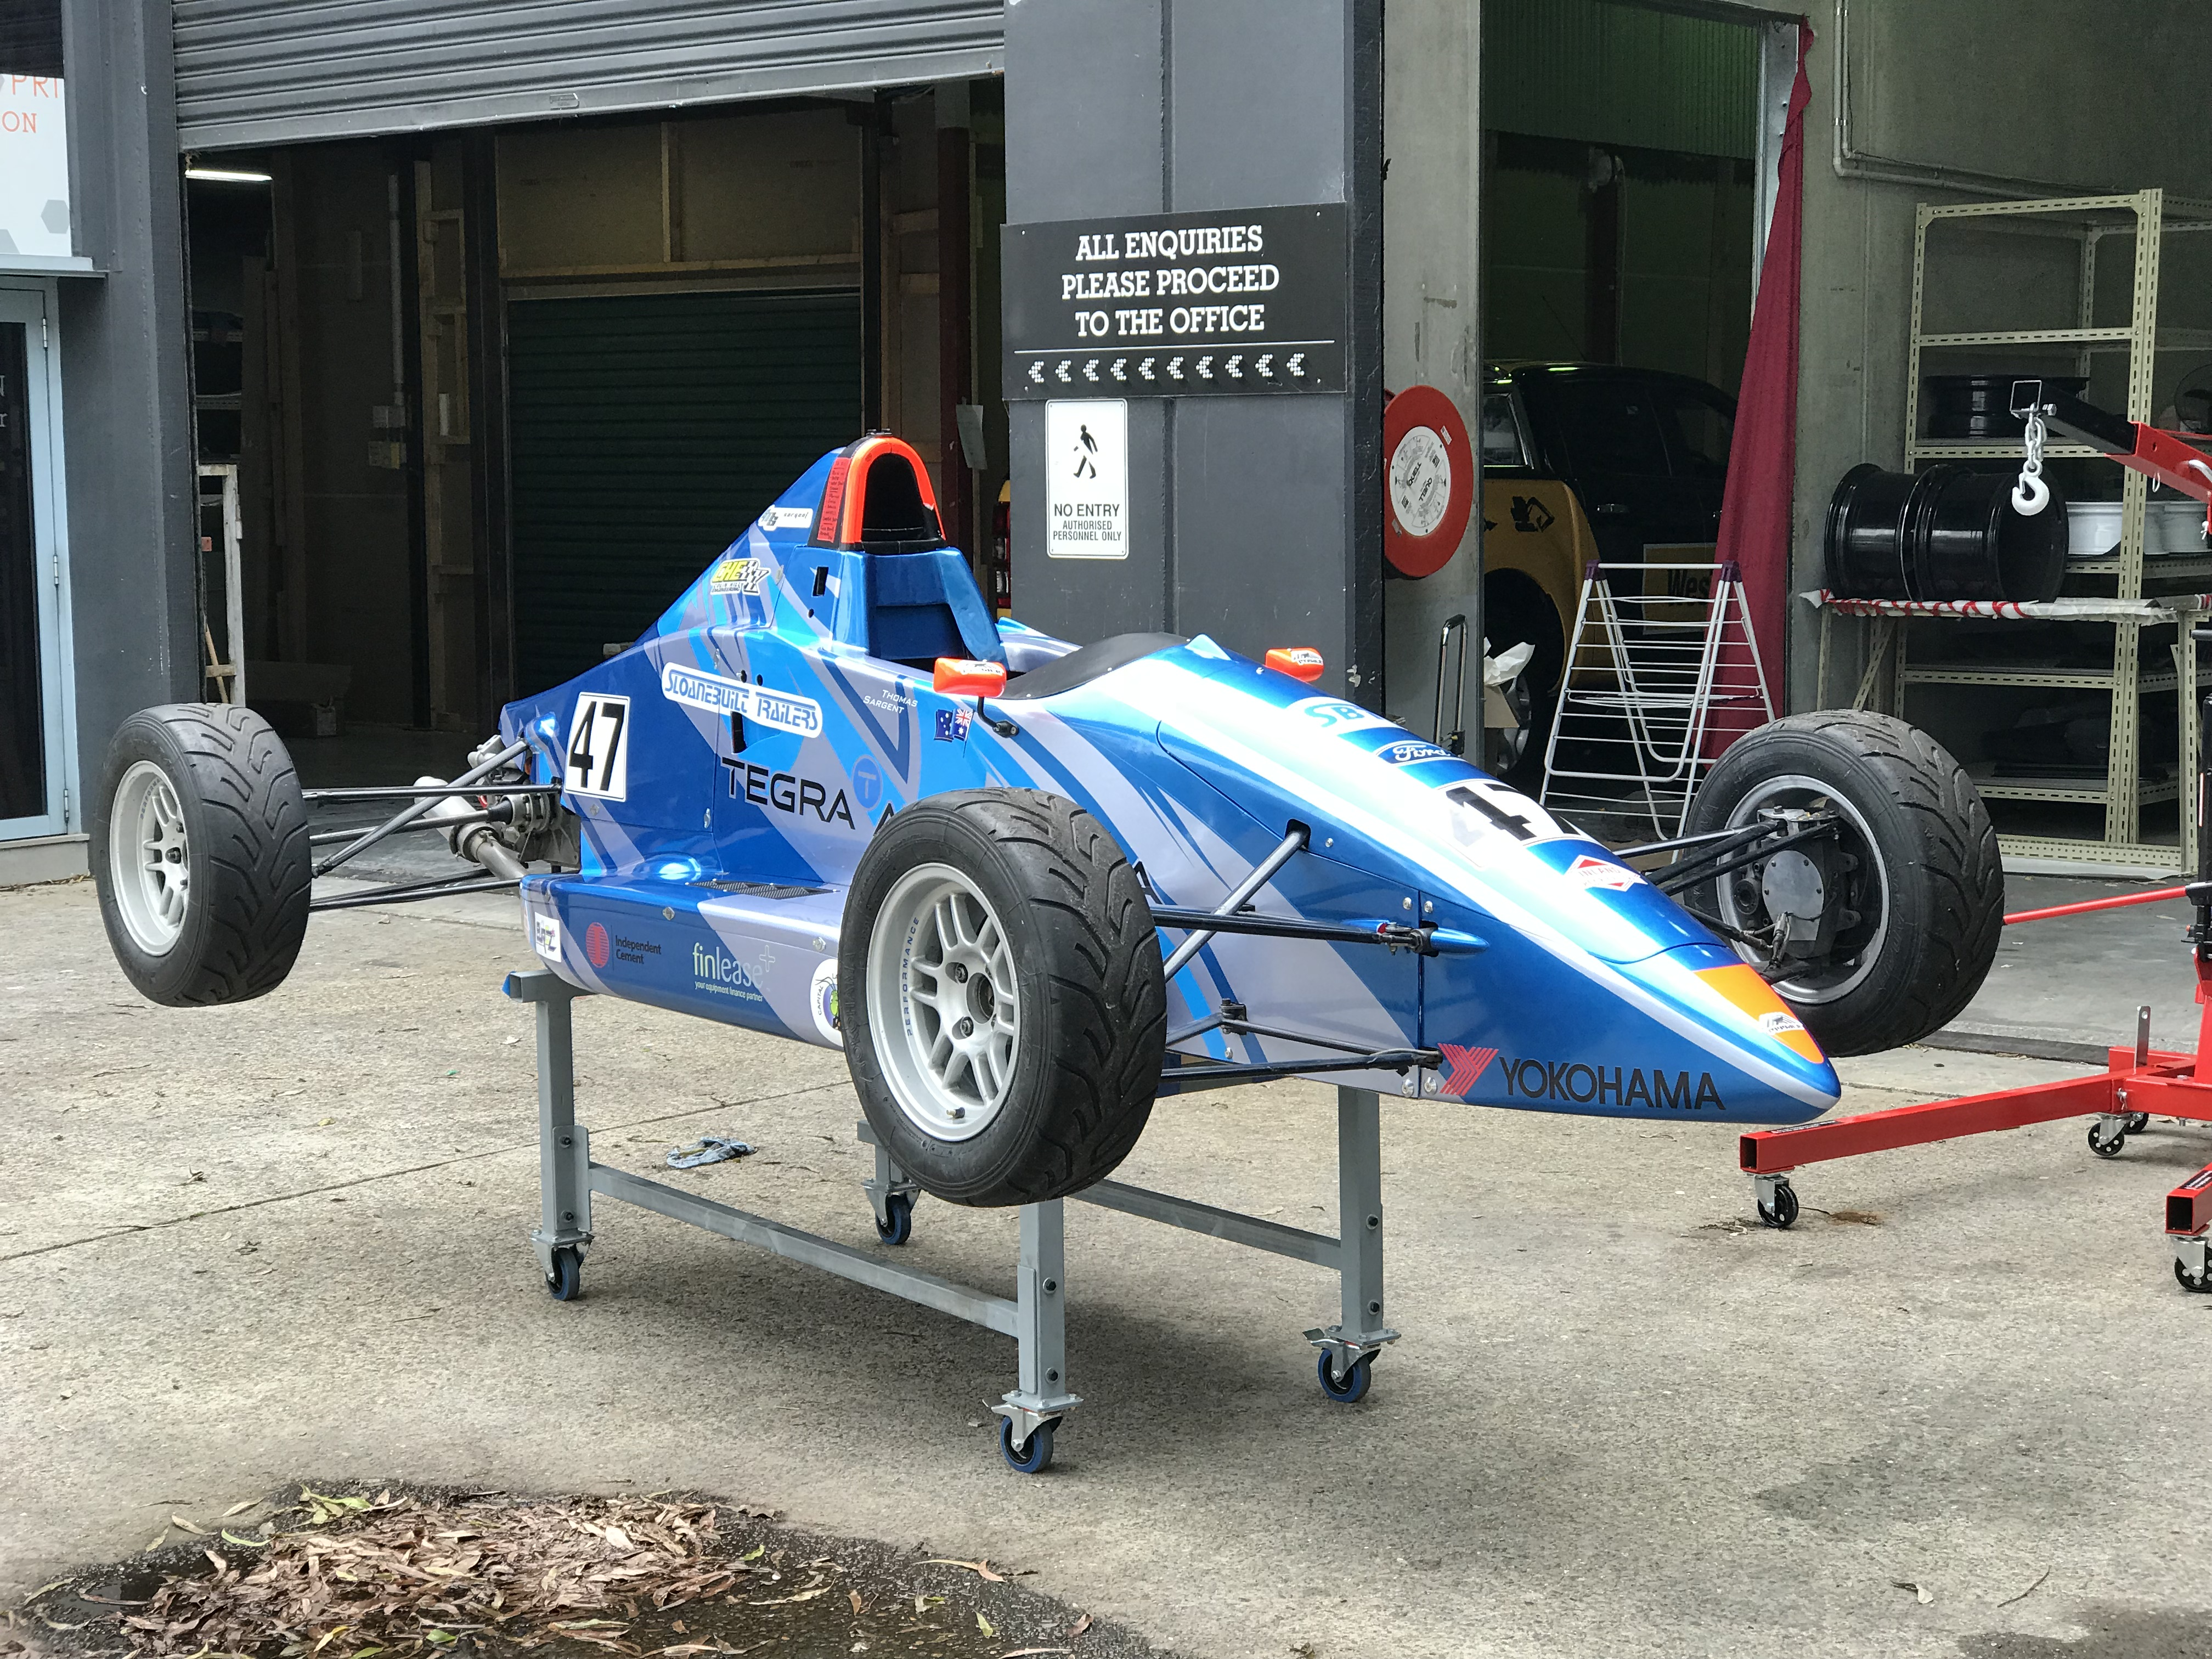 Another Formula Four